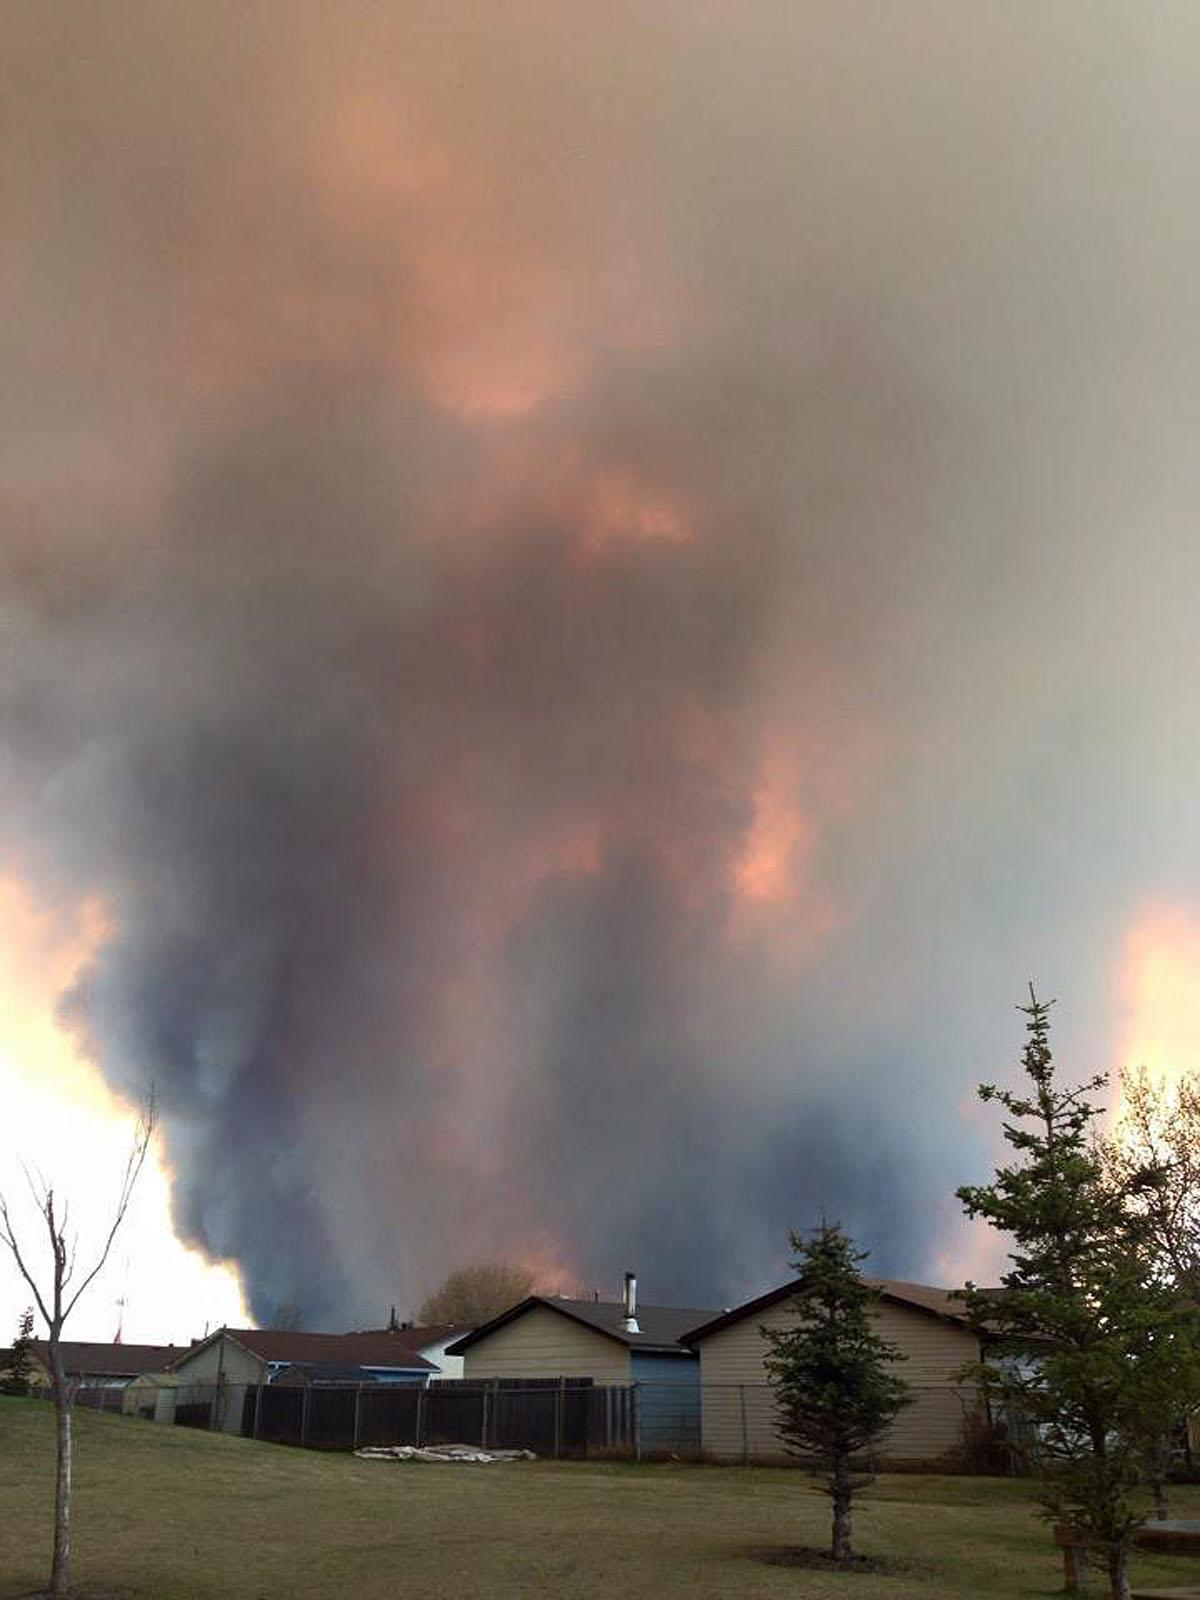 Fire burns and smoke fills the air near homes in Fort McMurray, Alberta, on Tuesday May 3, 2016. The entire population of the Canadian oil sands city of Fort McMurray, has been ordered to evacuate as a wildfire whipped by winds engulfed homes and sent ash raining down on residents.  (Kitty Cochrane/The Canadian Press via AP) MANDATORY CREDIT